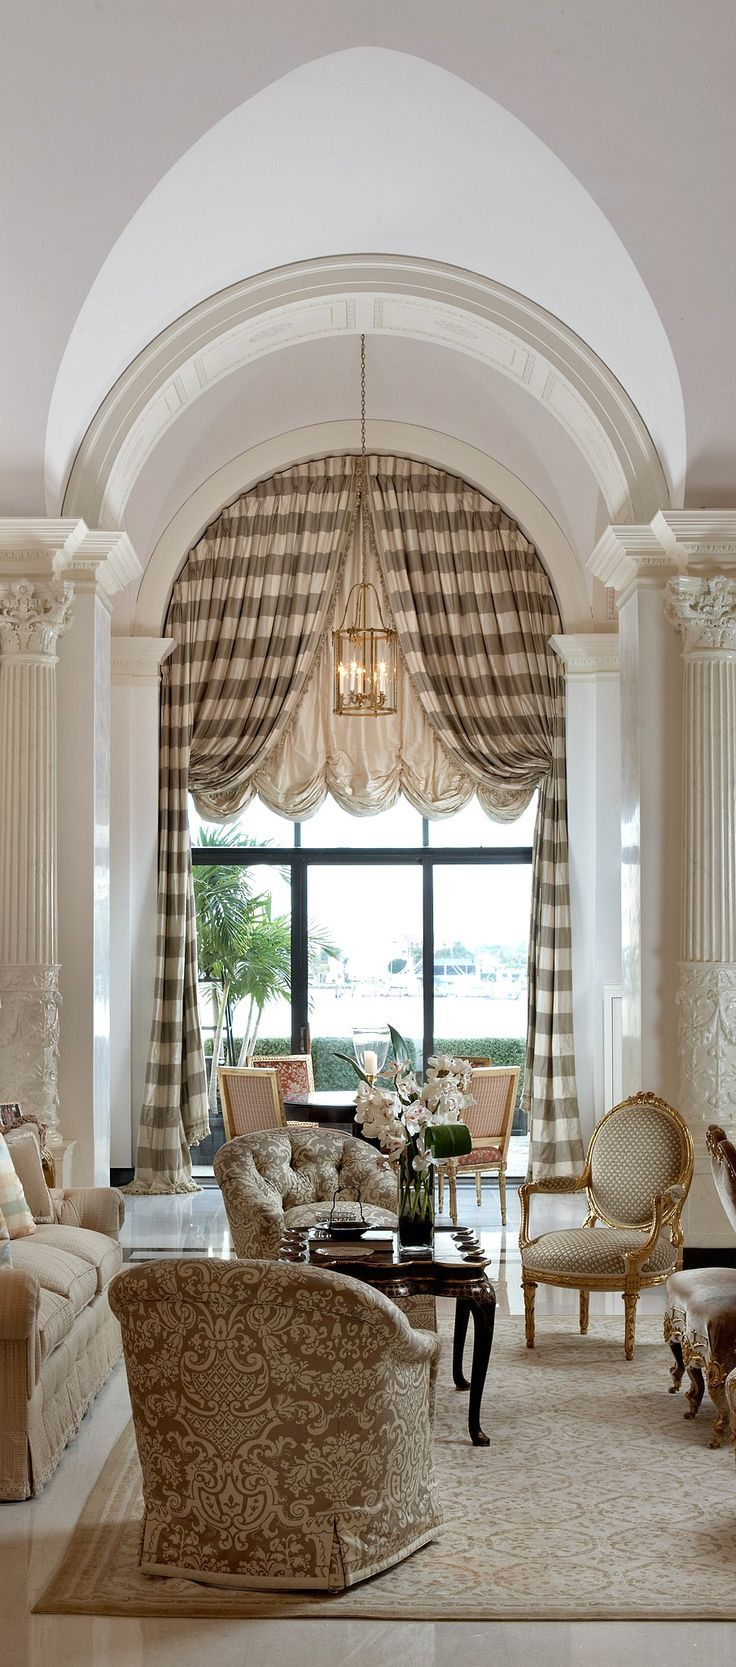 Best Images About Modern French Country On Pinterest - Modern french living room decor ideas